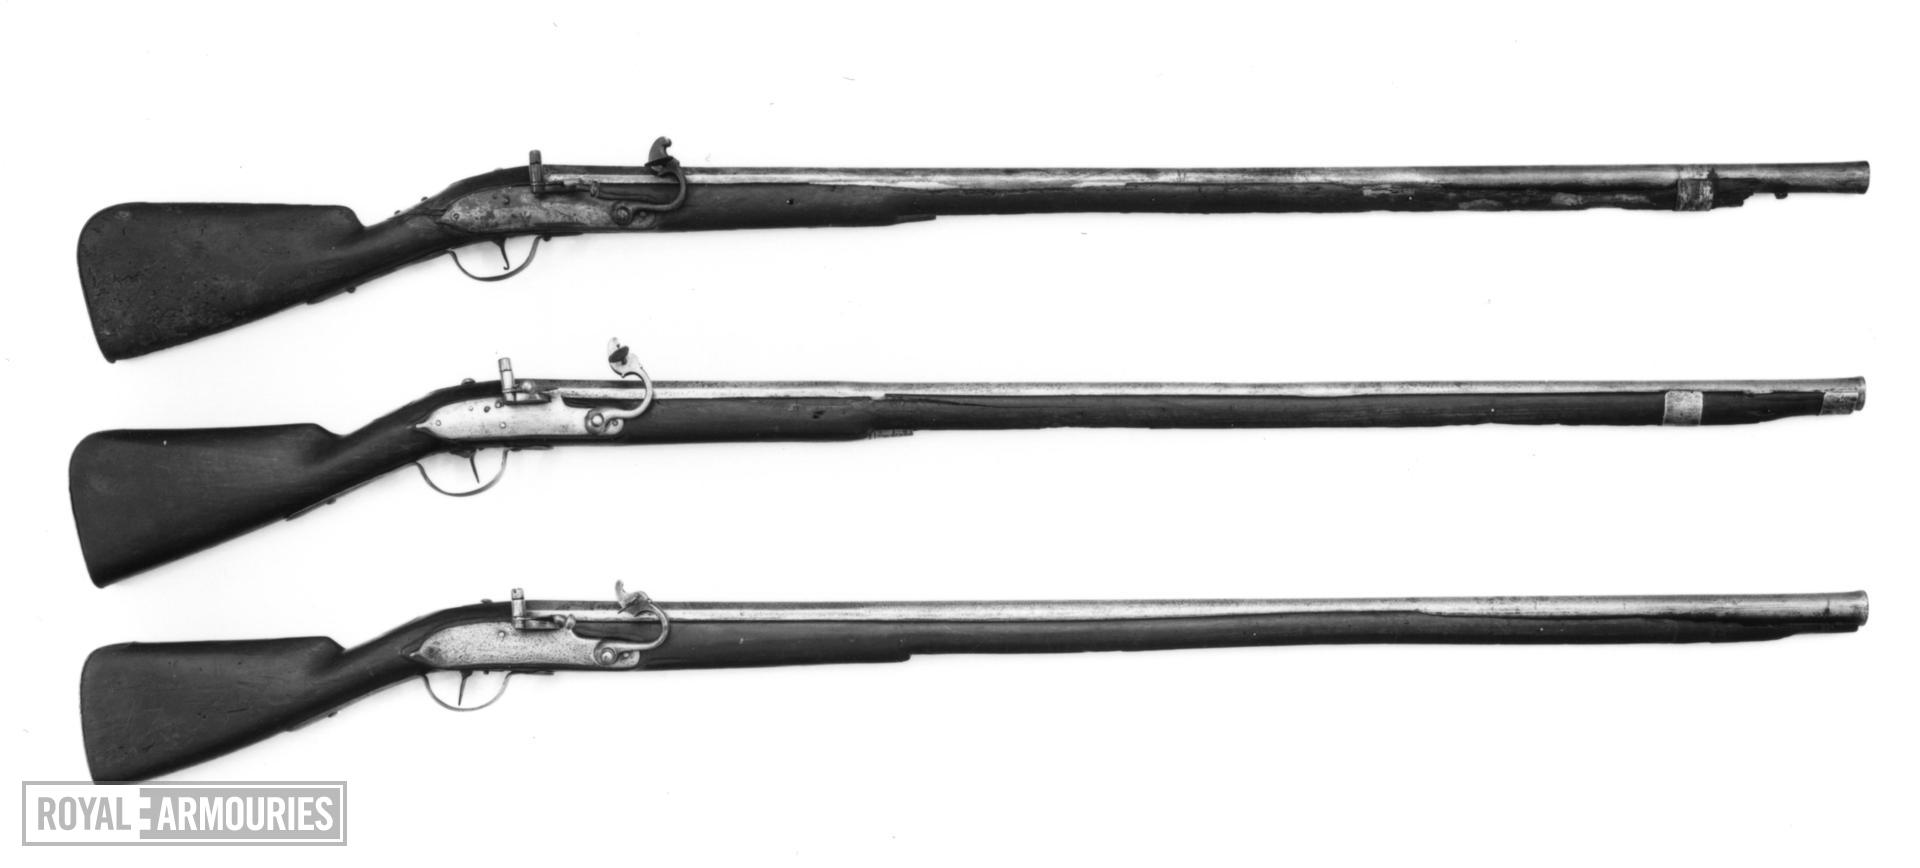 Matchlock muzzle-loading musket - William III Pattern